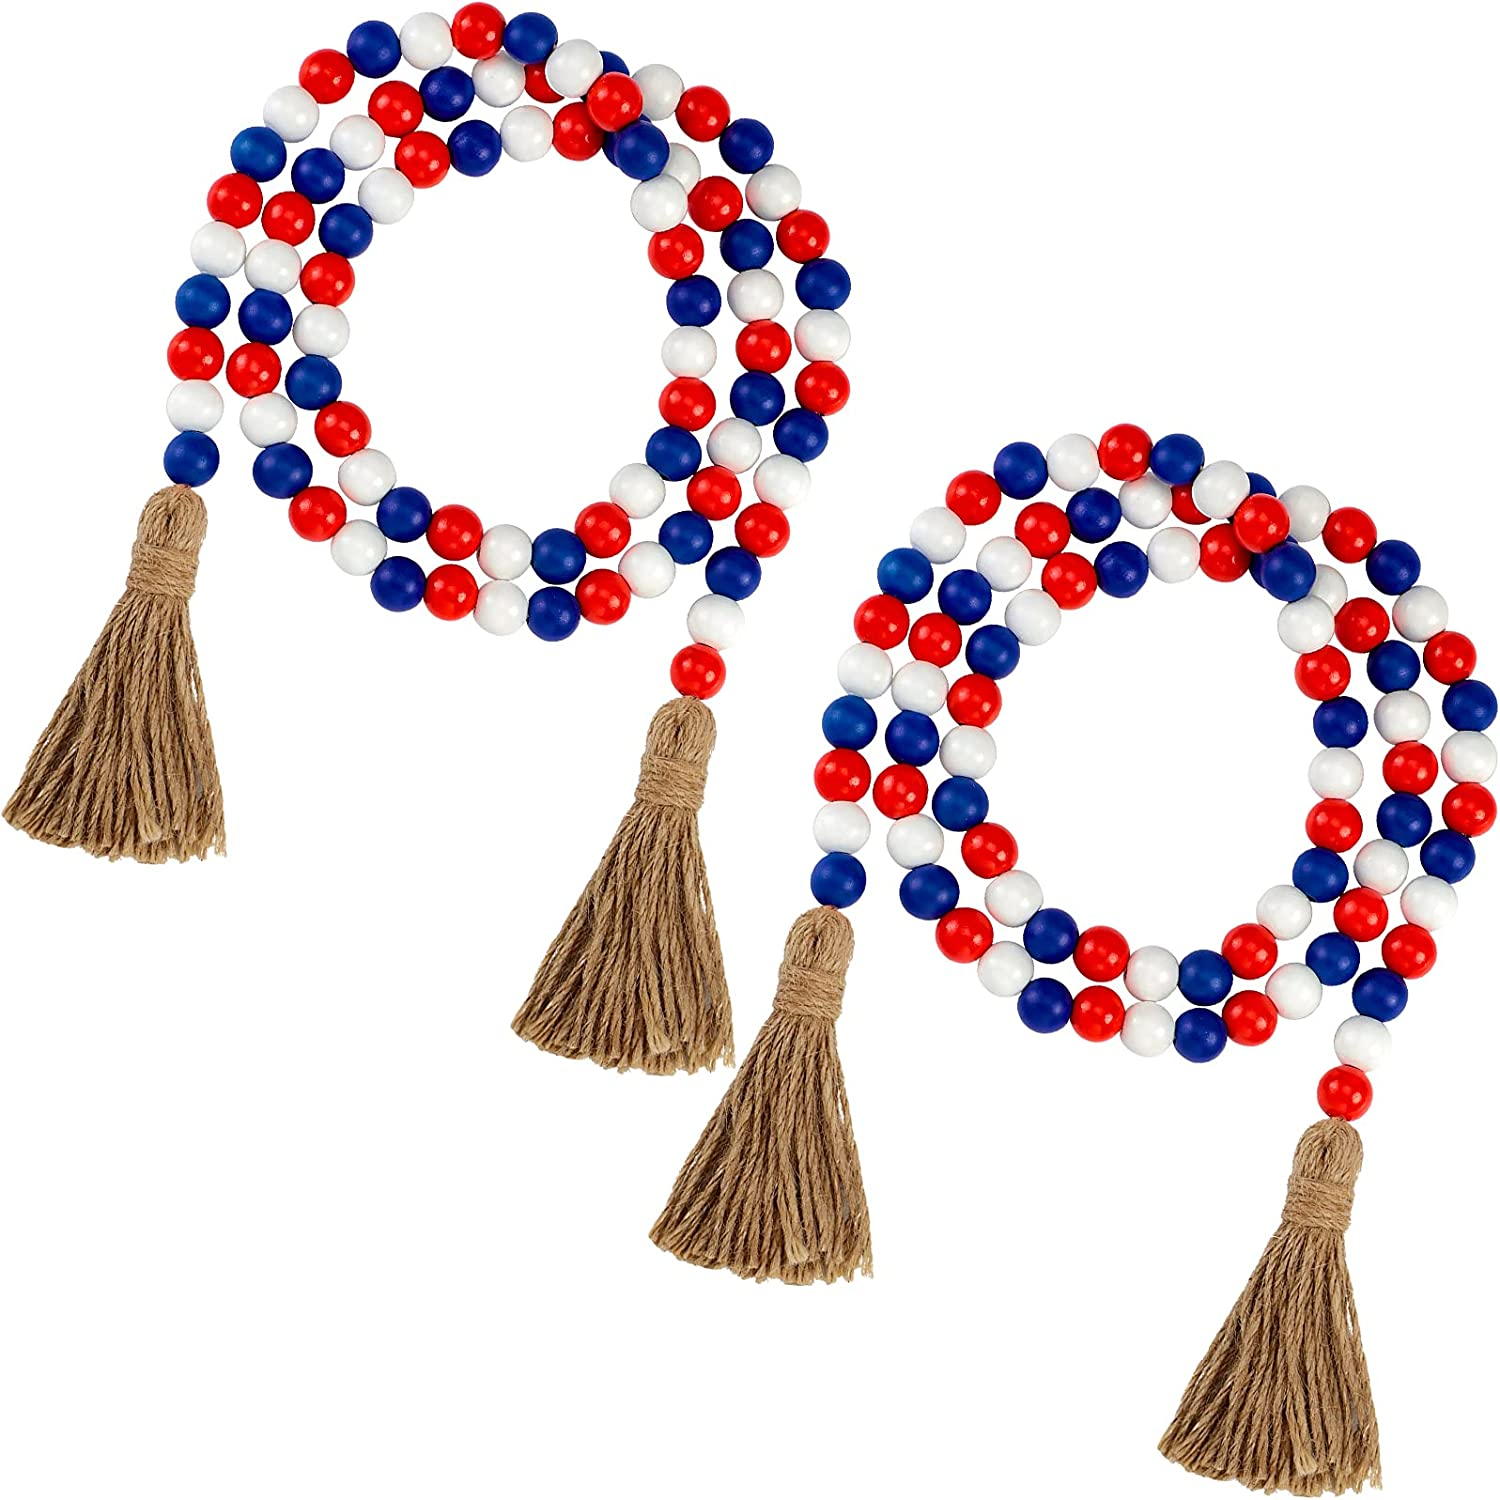 2 Pieces Independence Day Wood Beads with Tassels 10.8 ft Patriotic July 4th Wood Bead Garlands Farmhouse Rustic Country Wood Bead Boho Bead Garlands for Tiered Tray Decor